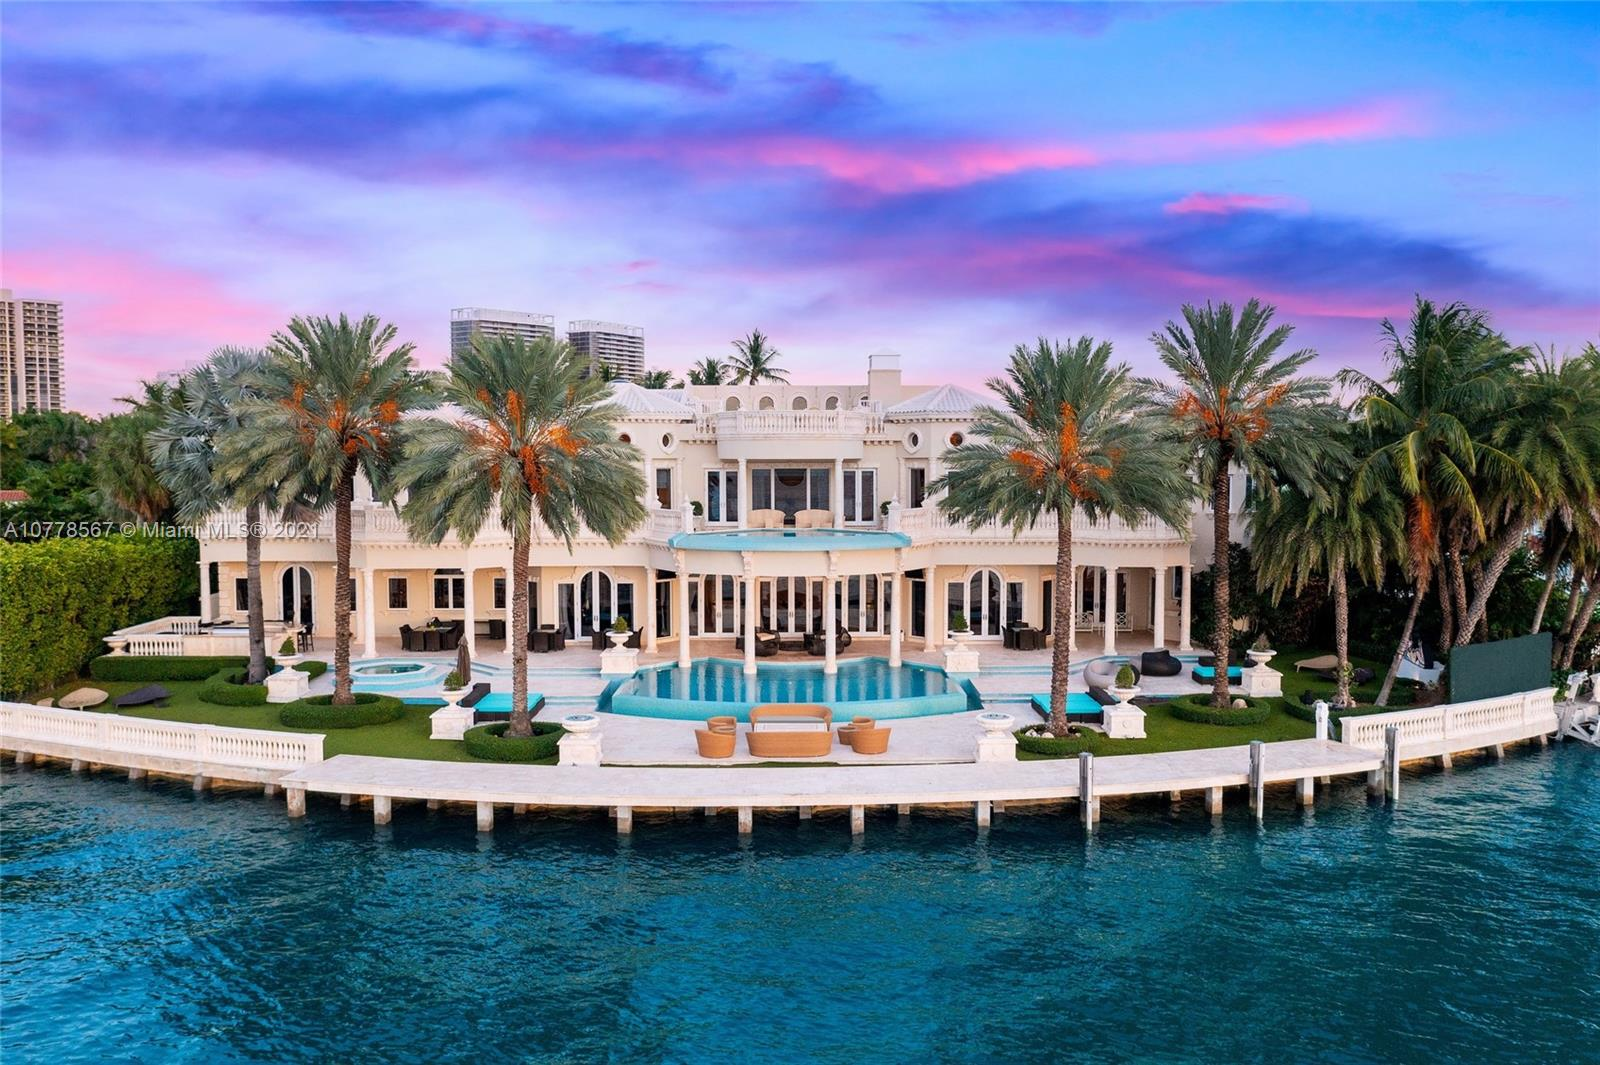 Absolutely unparalleled in finishes, appointments & furniture, this 12,879 SF palatial estate is designed like no other. Villa Magnolia sits upon 221 ft of wide waterfront with nw exposure, offering a front-row seat to dazzling sunsets. Private gates open to reveal a majestic Neoclassical home towering above verdant foliage. Enter into a rotunda foyer w/ a soaring 40-foot ceiling, curved marble & a striking two-sided staircase w/ white gold leaf bannisters. Unique features include hand-crafted stone throughout, European paint finishes, 15-foot coffered ceilings, 2-infinity edge pools, one just off the principal suite, 3rd level rooftop entertaining terrace, temperature-controlled 850-bottle wine room, gourmet kitchen w/ a built-in 750-gallon aquarium, movie theatre & glass elevator.